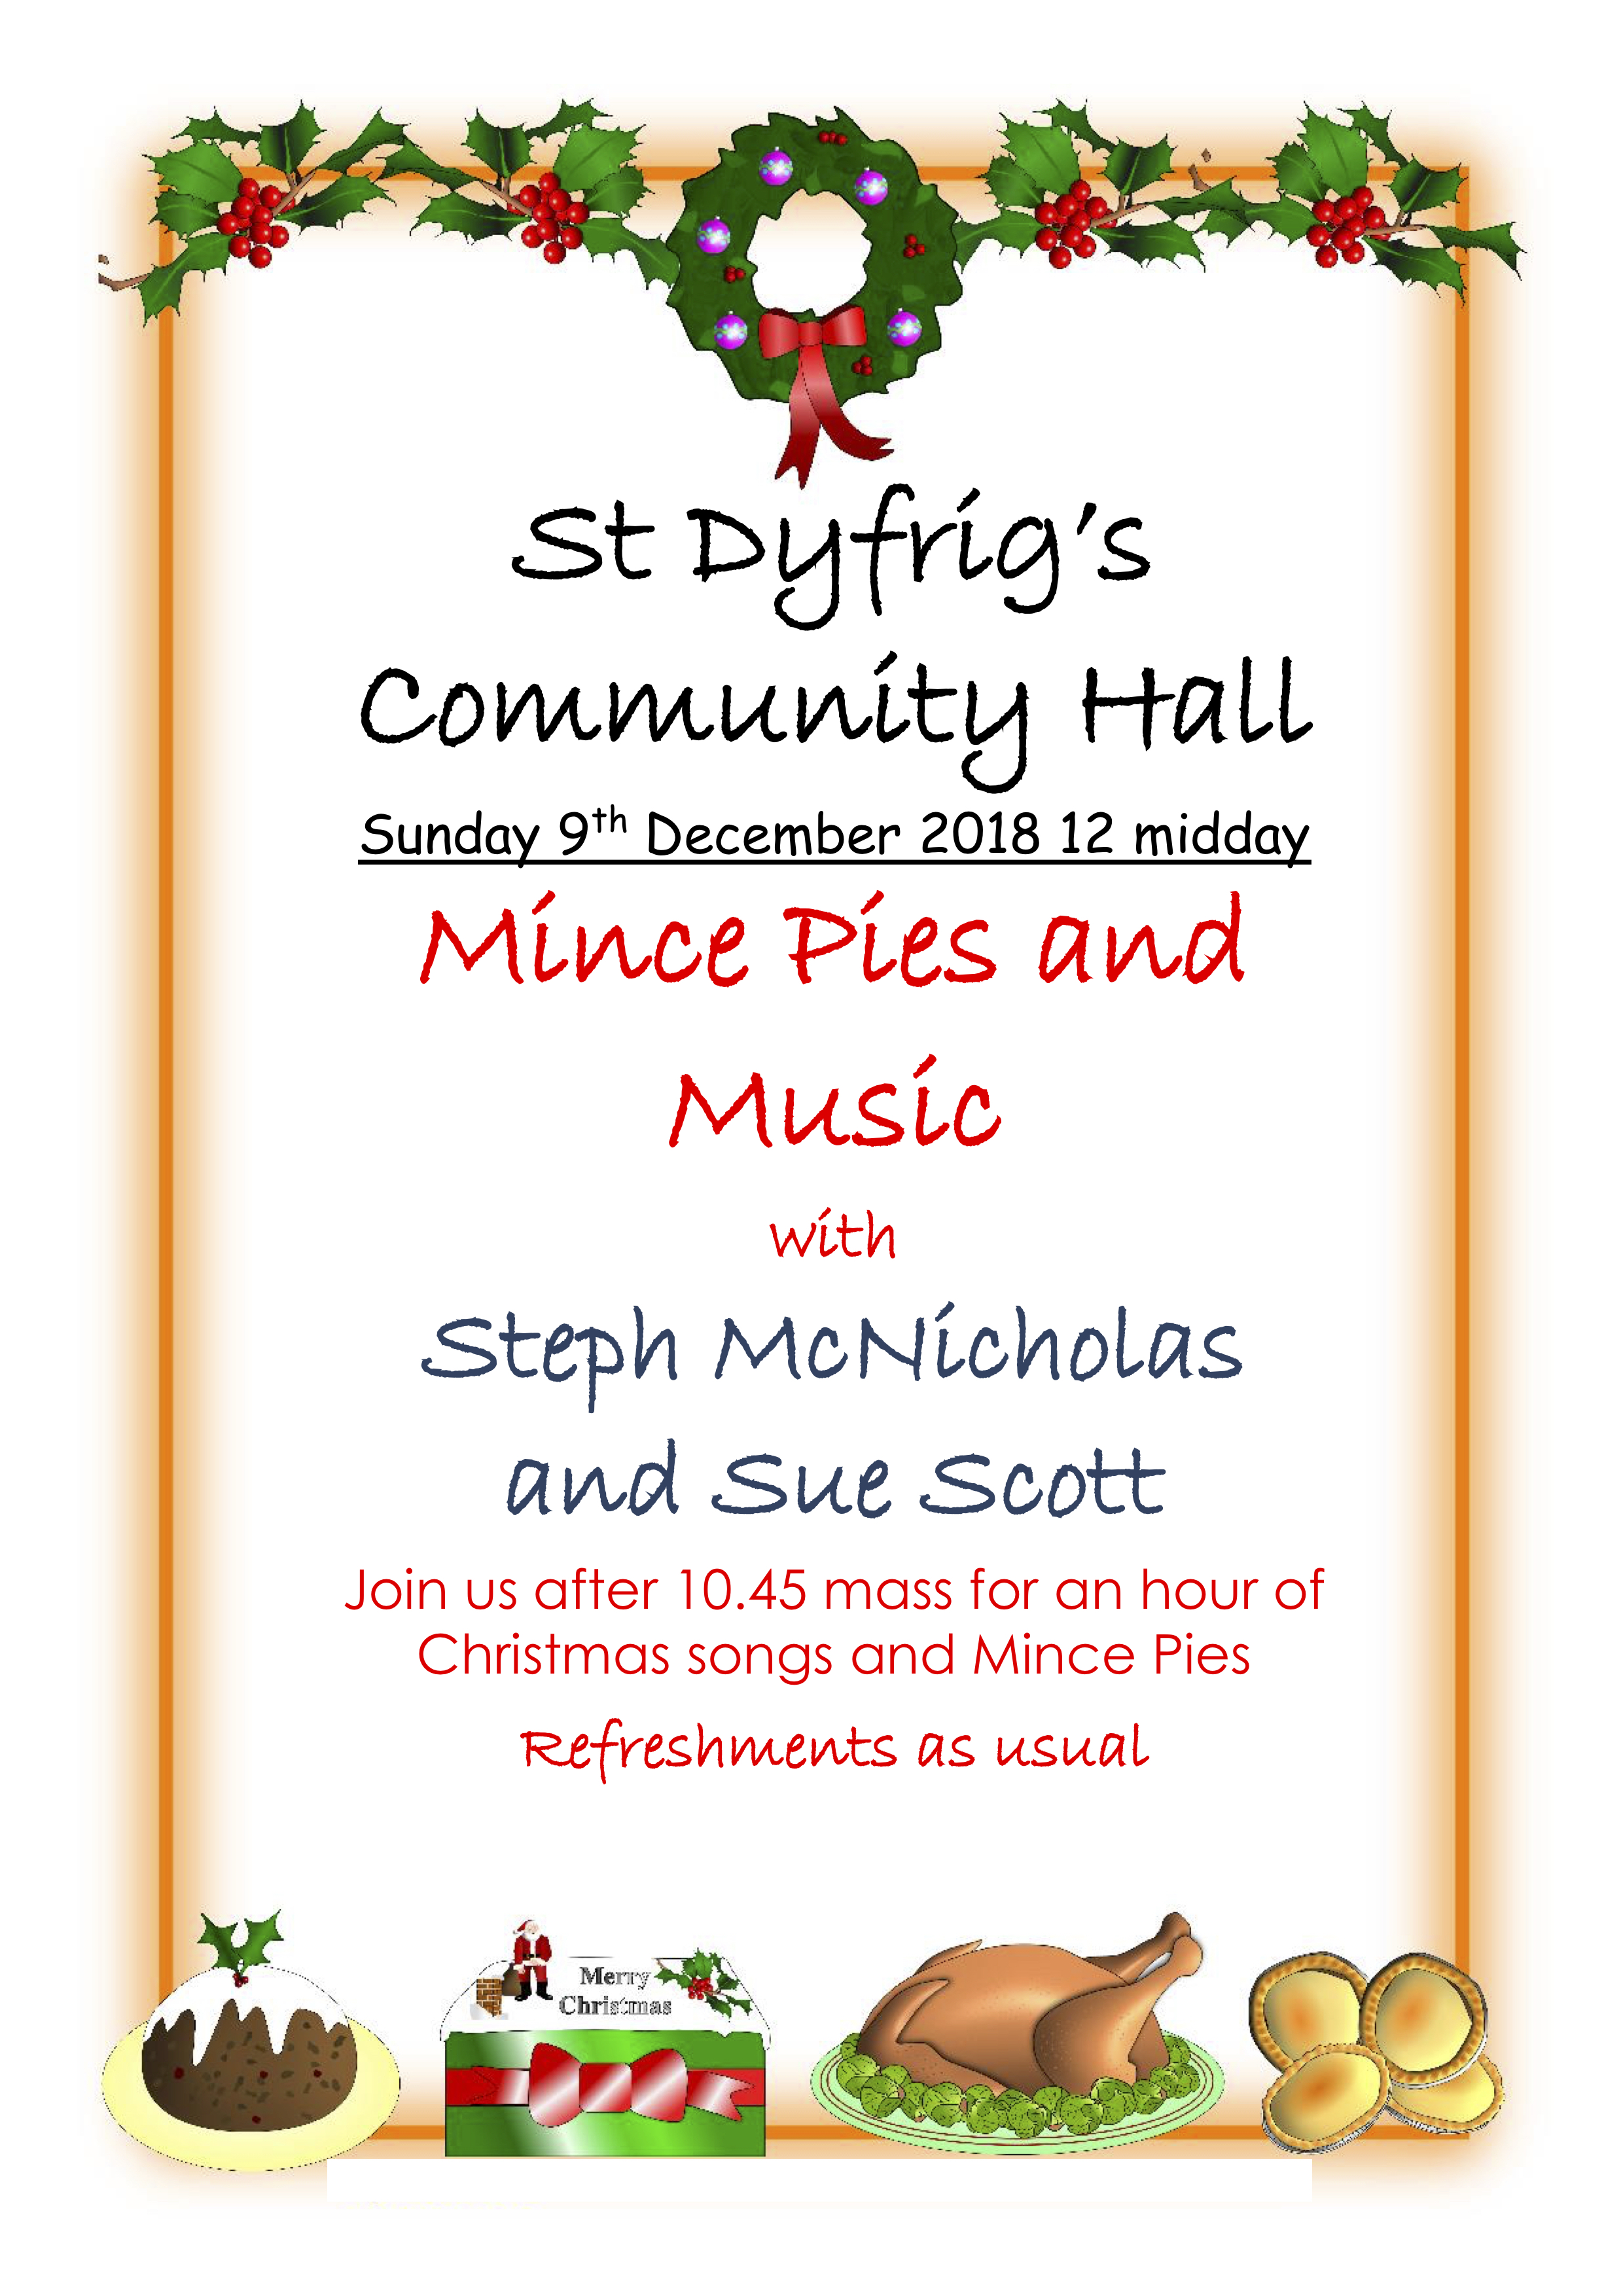 Music and Mince Pies